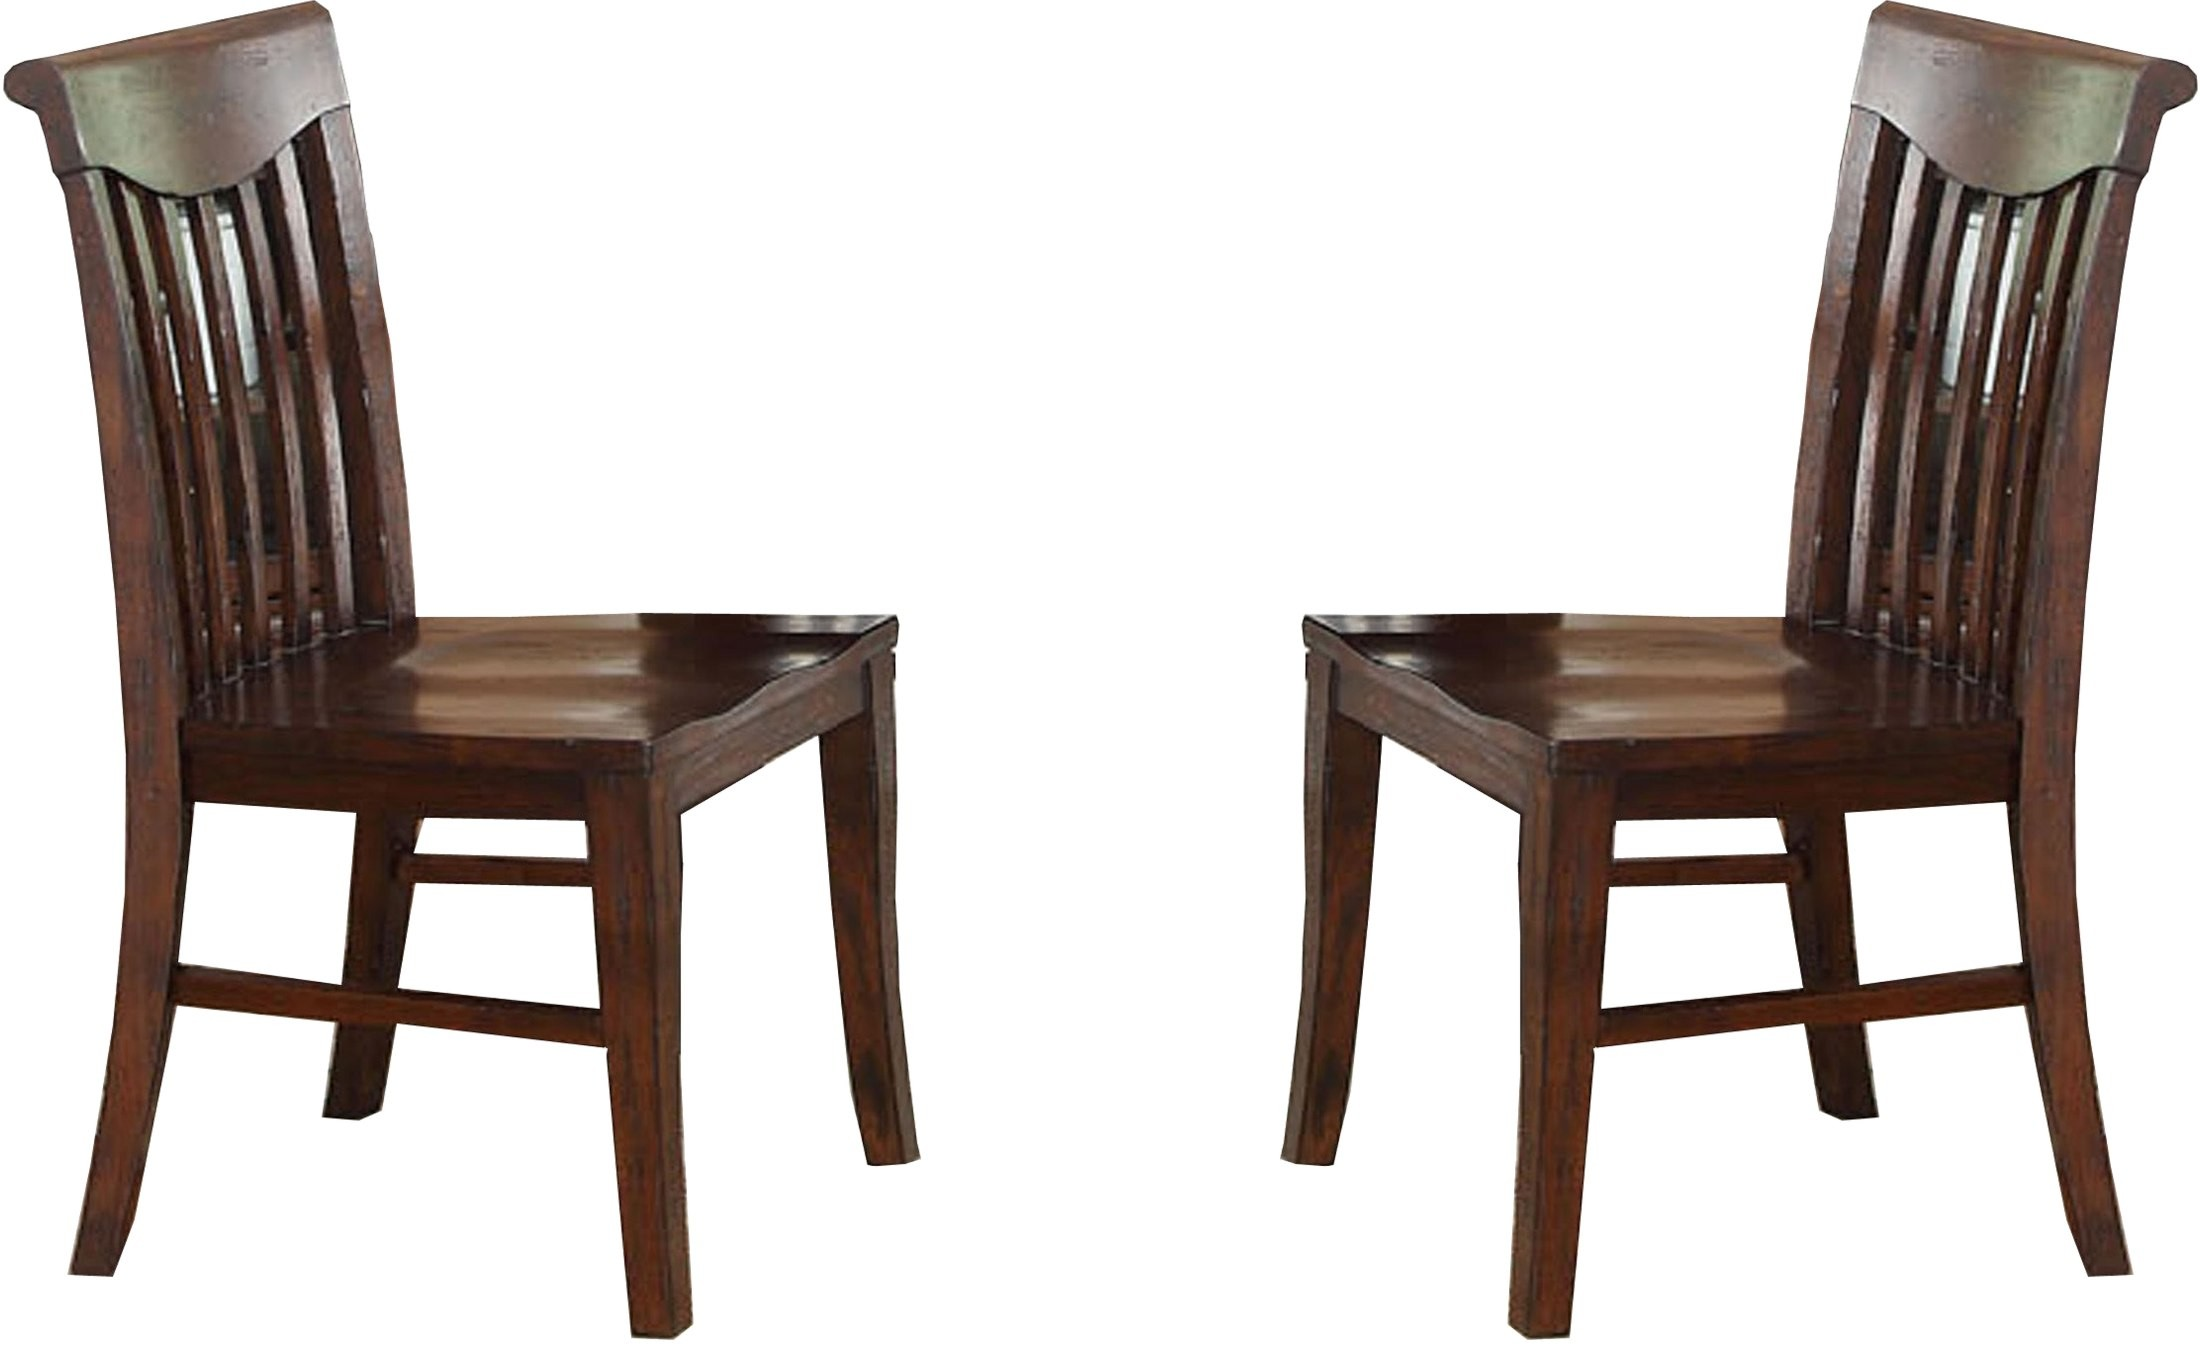 Distressed White Oak Dining Chairs: Gettysburg Distressed Dark Oak Side Chair Set Of 2 From